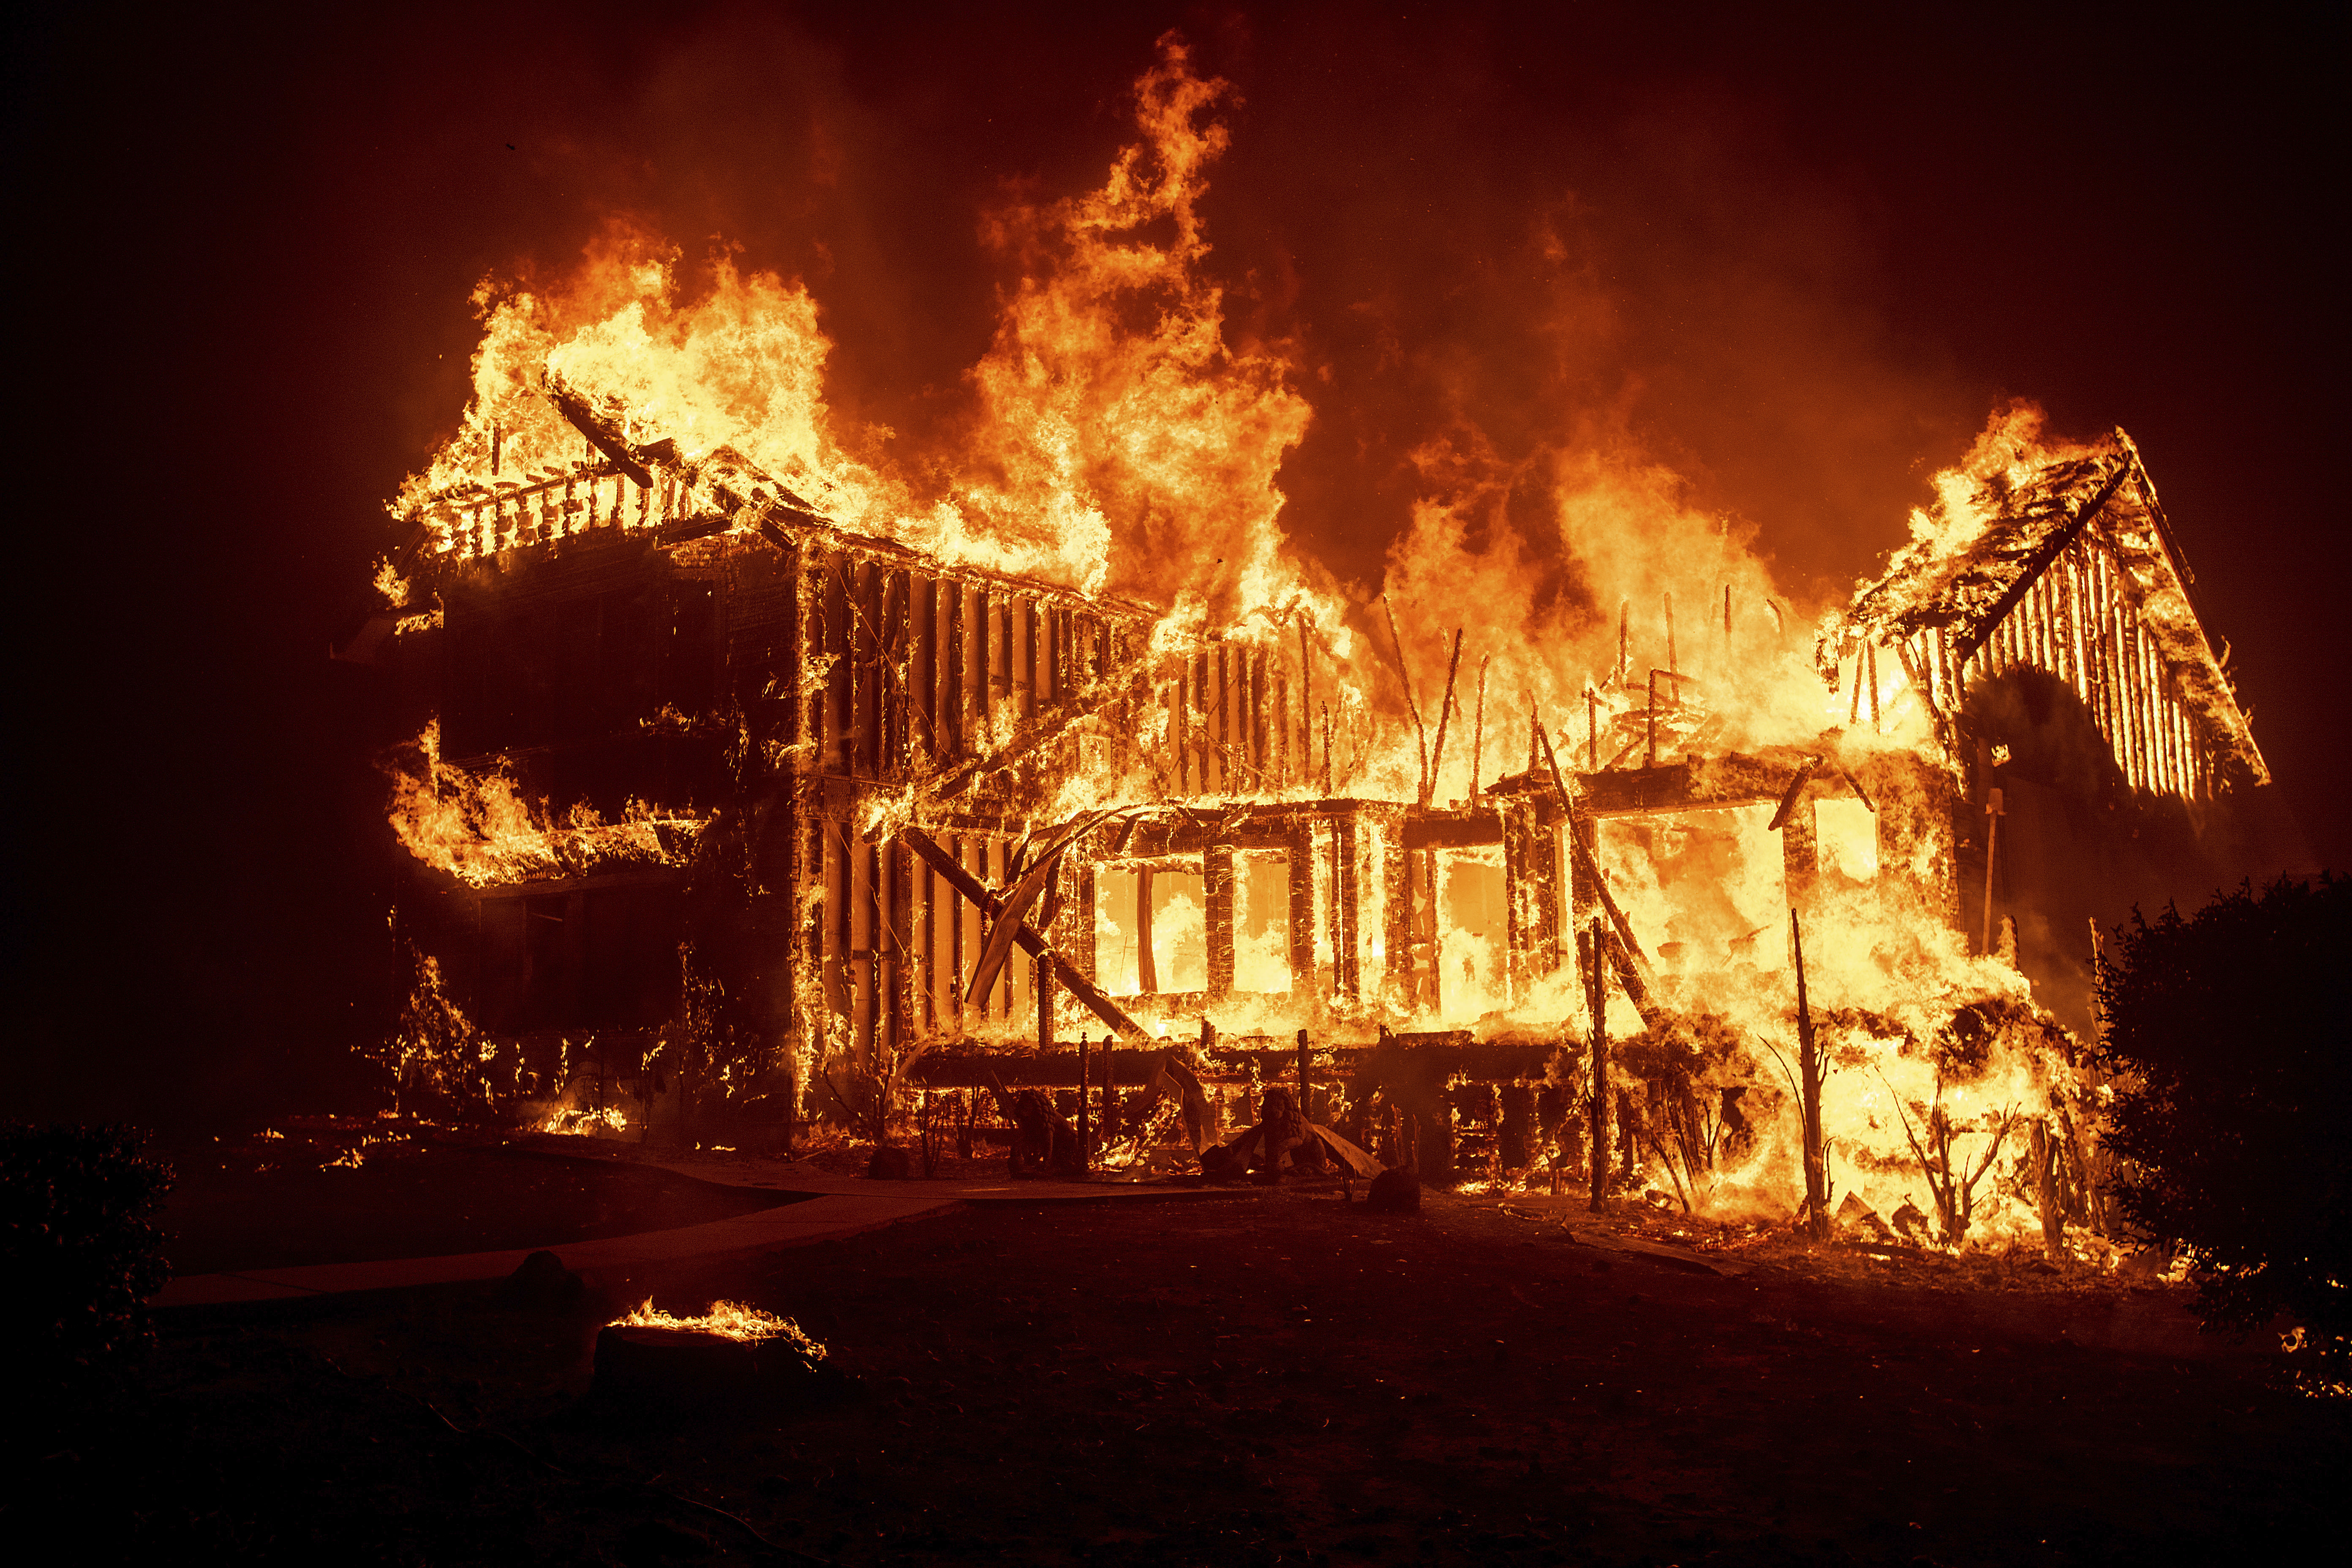 Camp Fire becomes deadliest wildfire in California's history